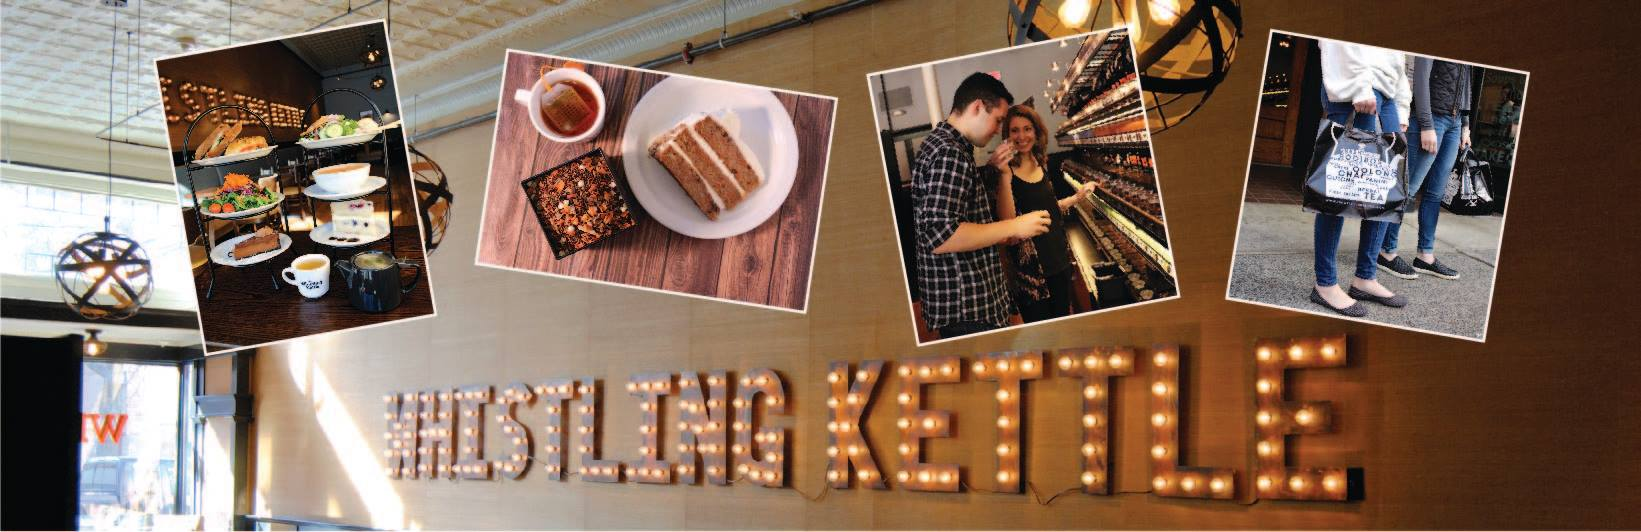 About Whistling Kettle Homepage